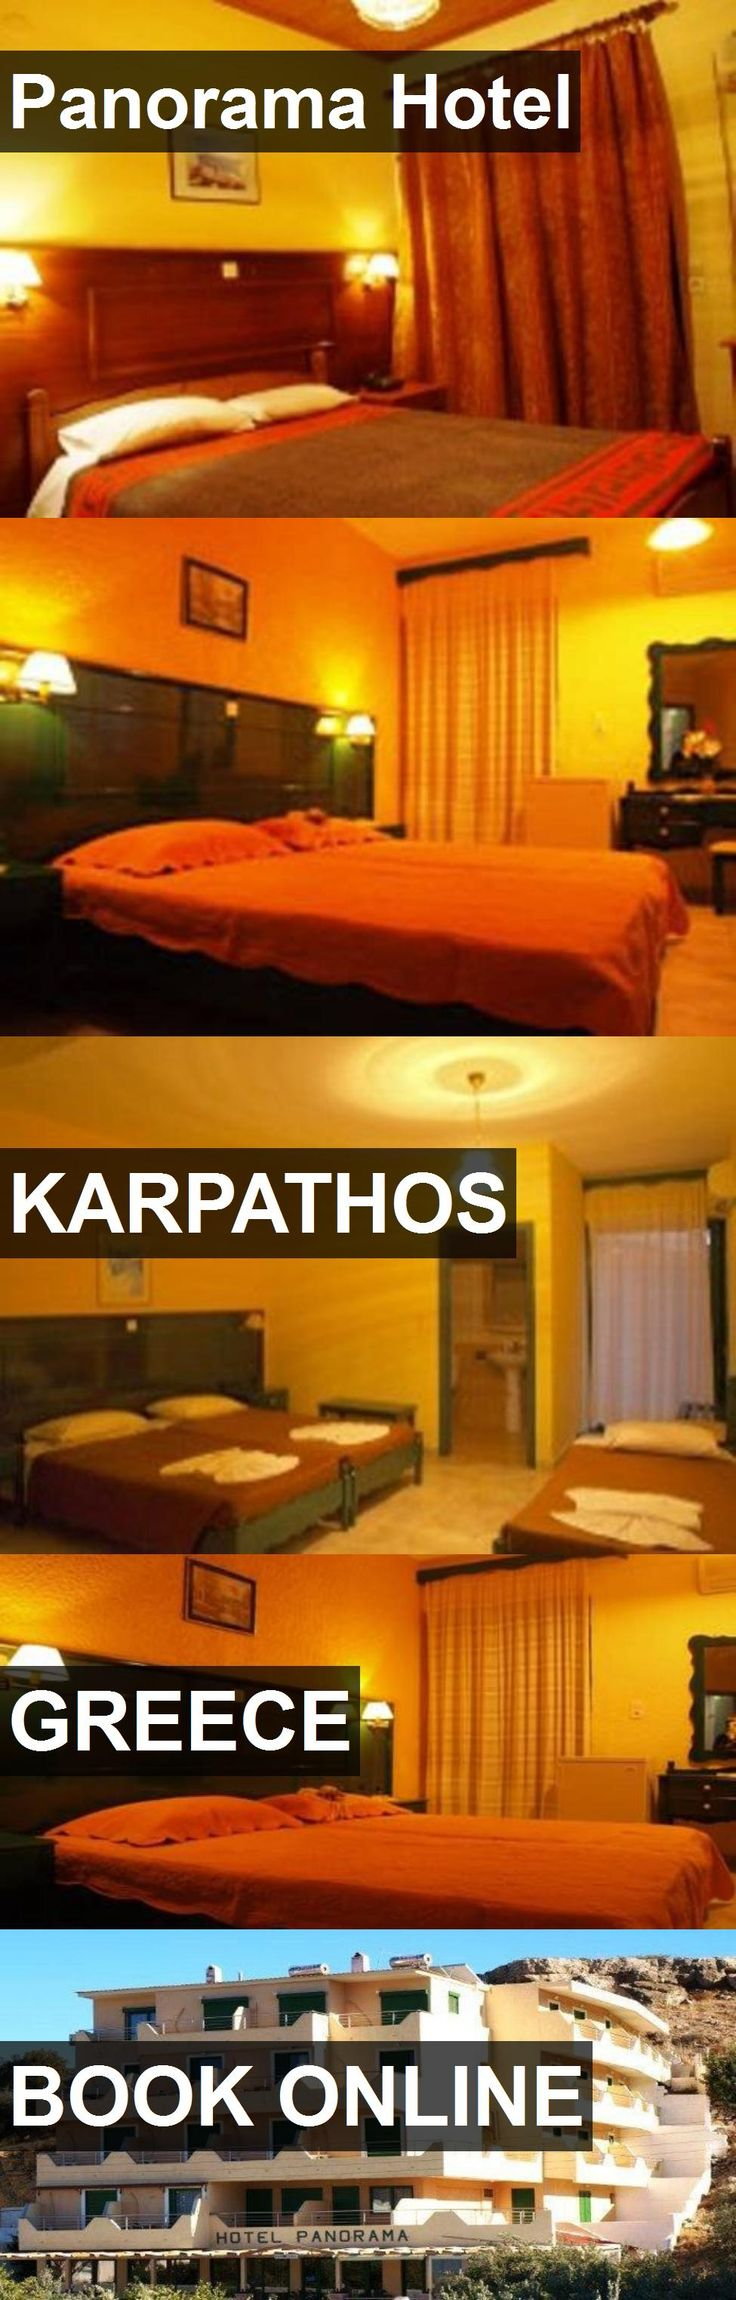 Panorama Hotel in Karpathos, Greece. For more information, photos, reviews and best prices please follow the link. #Greece #Karpathos #travel #vacation #hotel